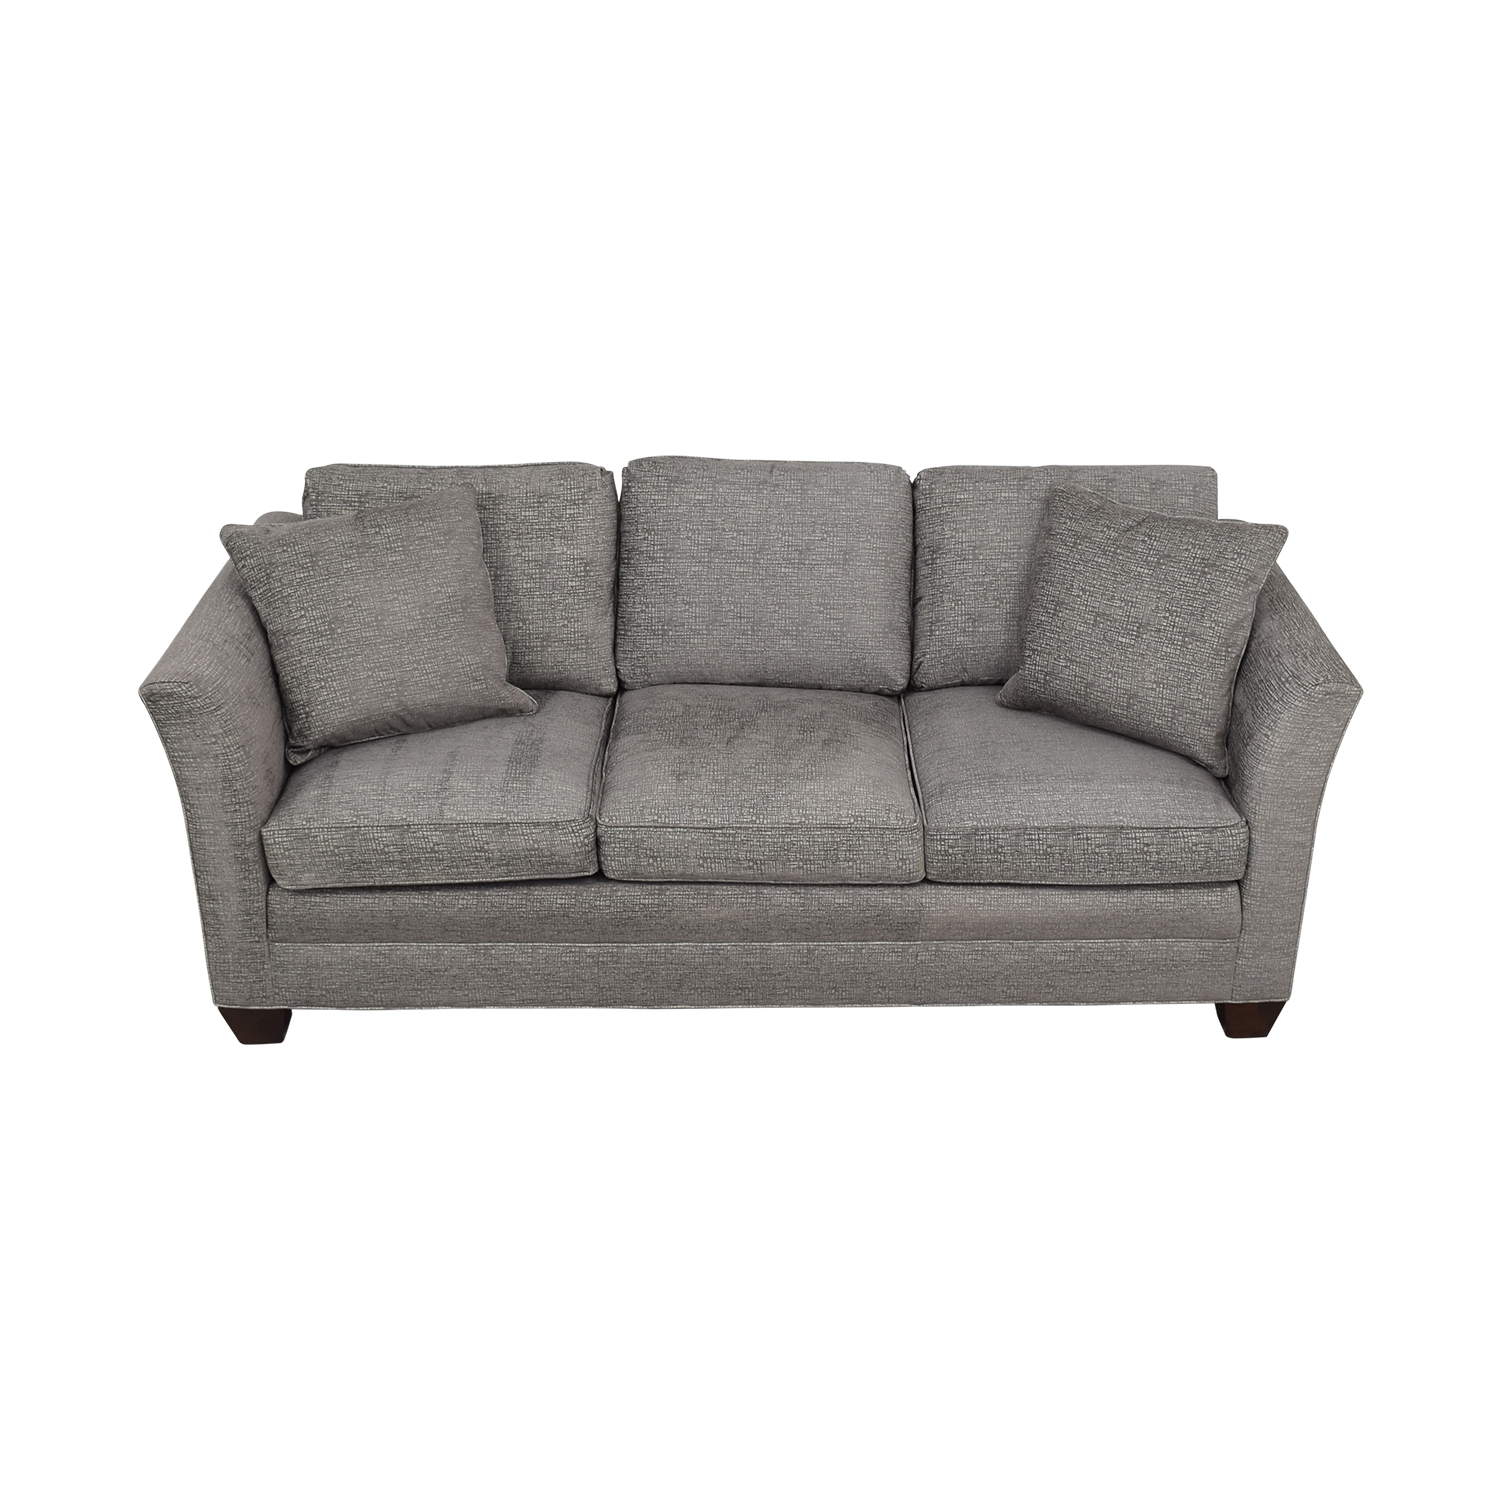 Stickley Furniture Stickley Furniture Grey Three-Cushion Couch used